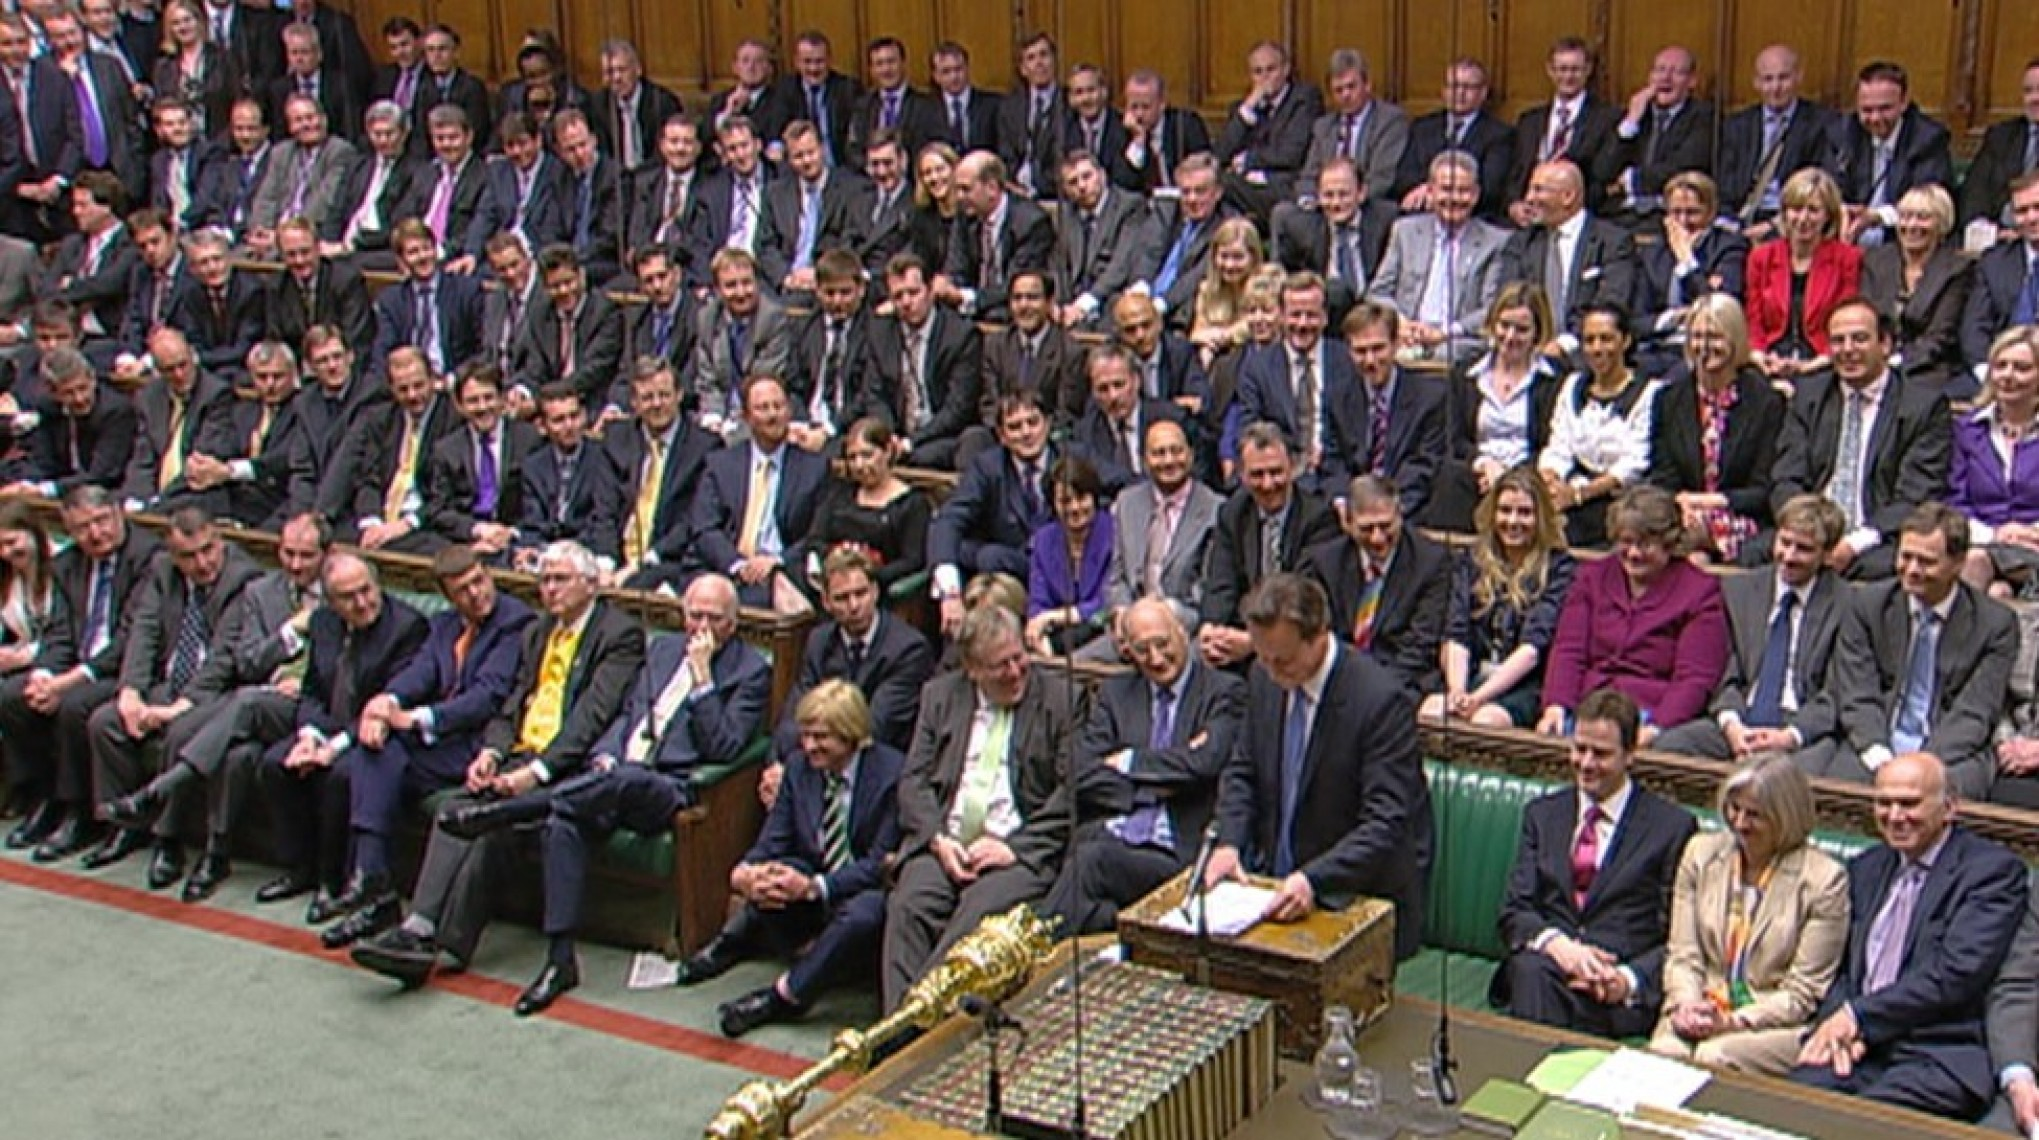 The wonderfully diverse UK parliament in session.